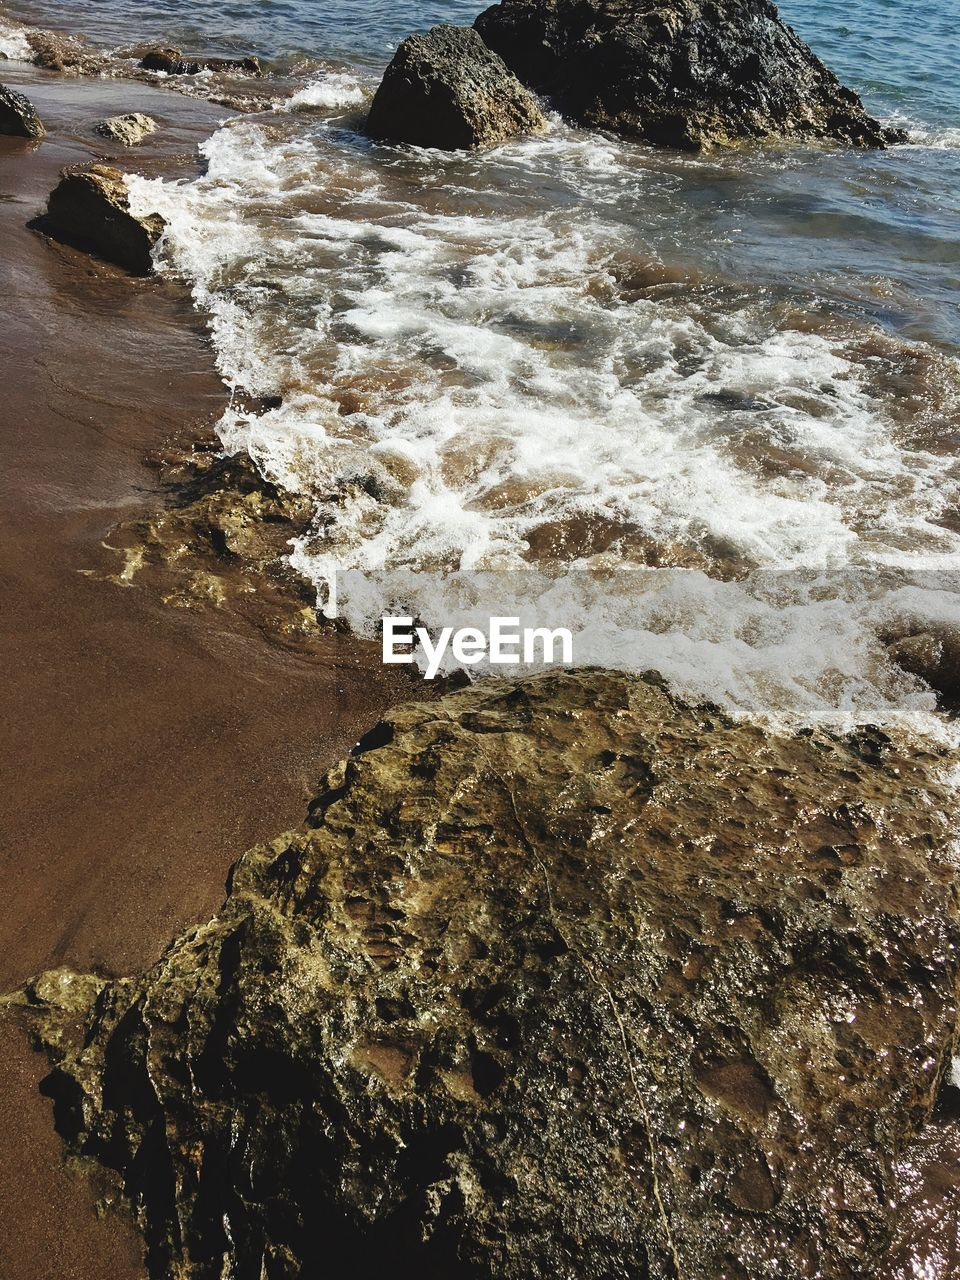 sea, water, beach, nature, wave, shore, beauty in nature, rock - object, tranquility, no people, tranquil scene, day, sand, outdoors, scenics